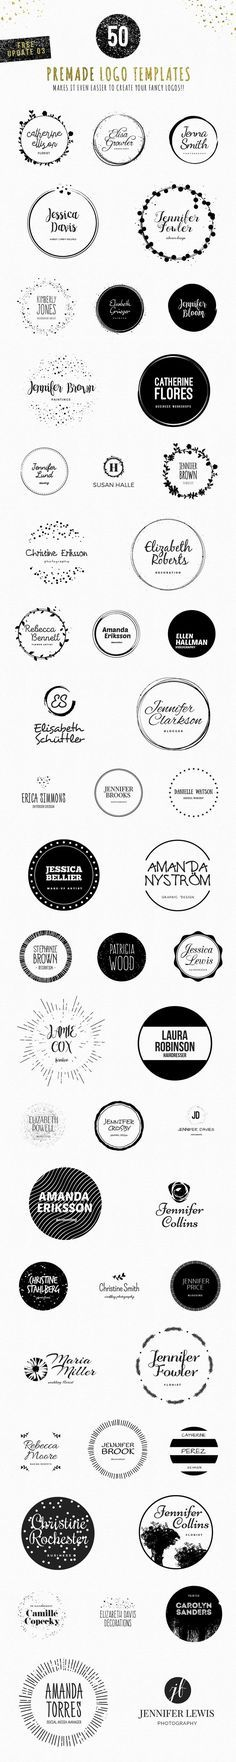 Feminine Logo Creator Circle Edition by WornOutMedia Co. on Creative Market | Make thousands of modern, glittery and glamorous logos for women's businesses like photography, blogging, food business, graphic design, hair stylist, cosmetology, recipes and for any feminine business! This is the first and the last logo pack you'll ever need to create a feminine logo!